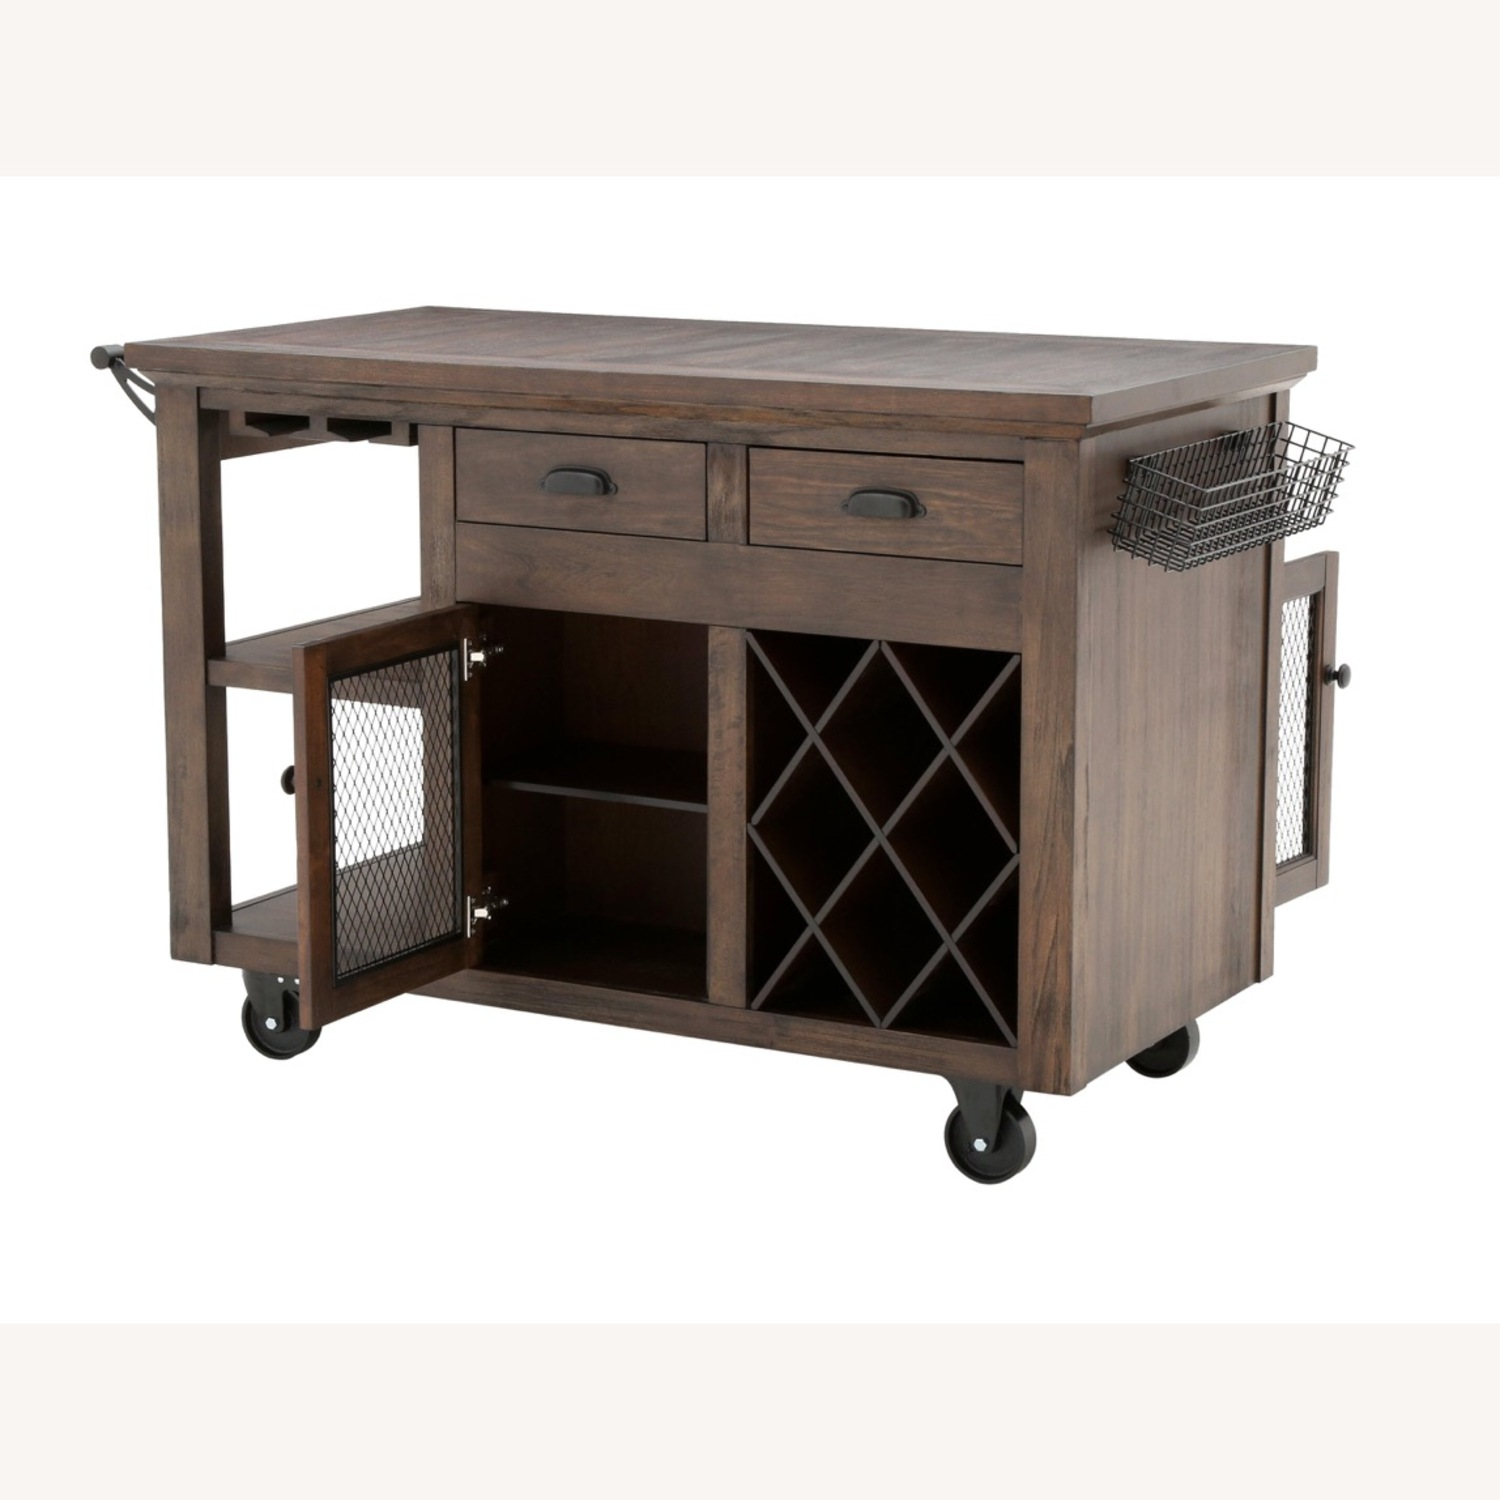 Cooper Rustic Walnut Kitchen Cart with Storage - image-4